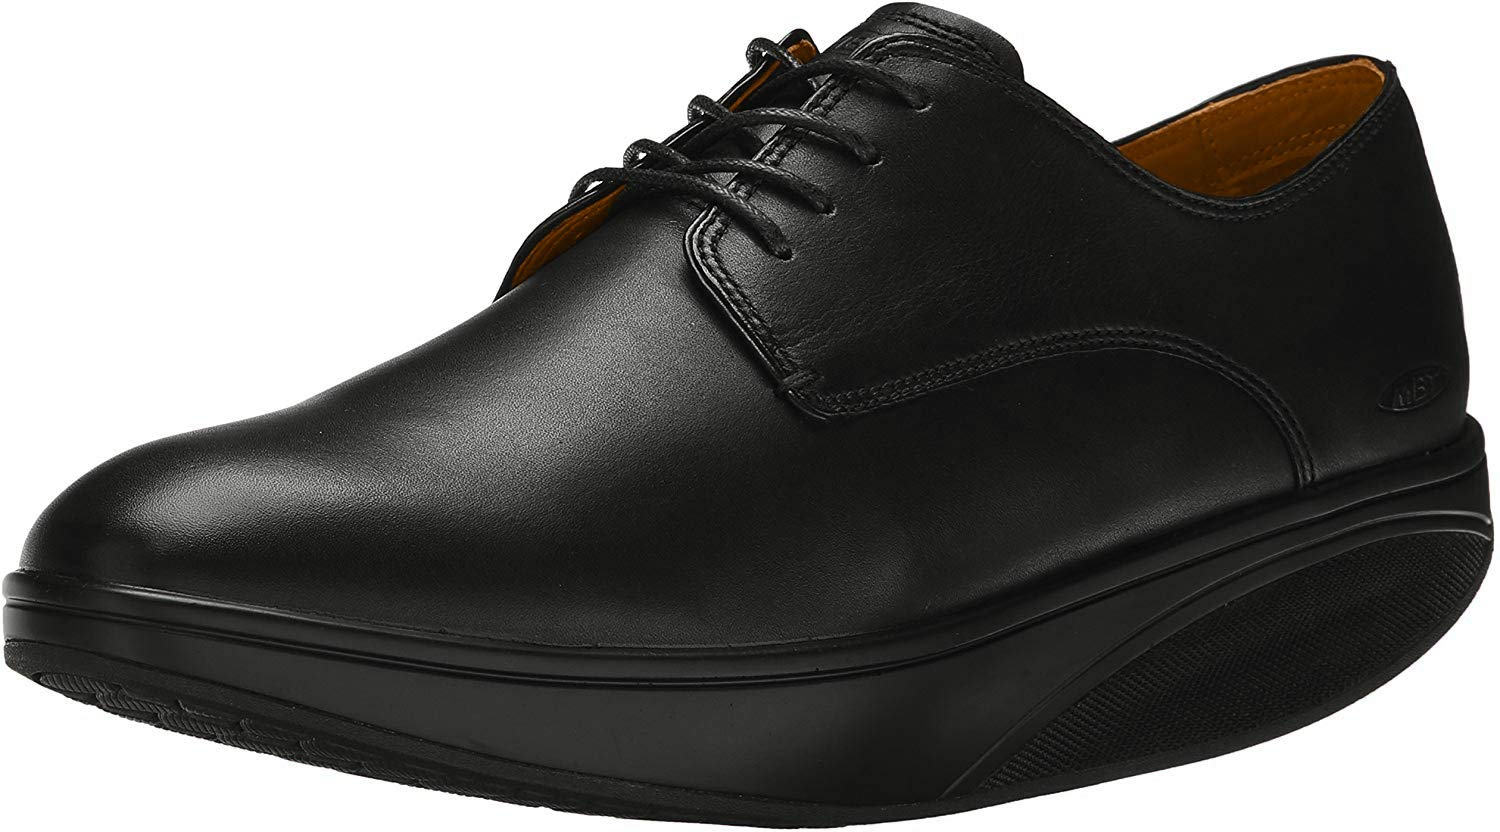 MBT Men's Kabisa 5 Oxford